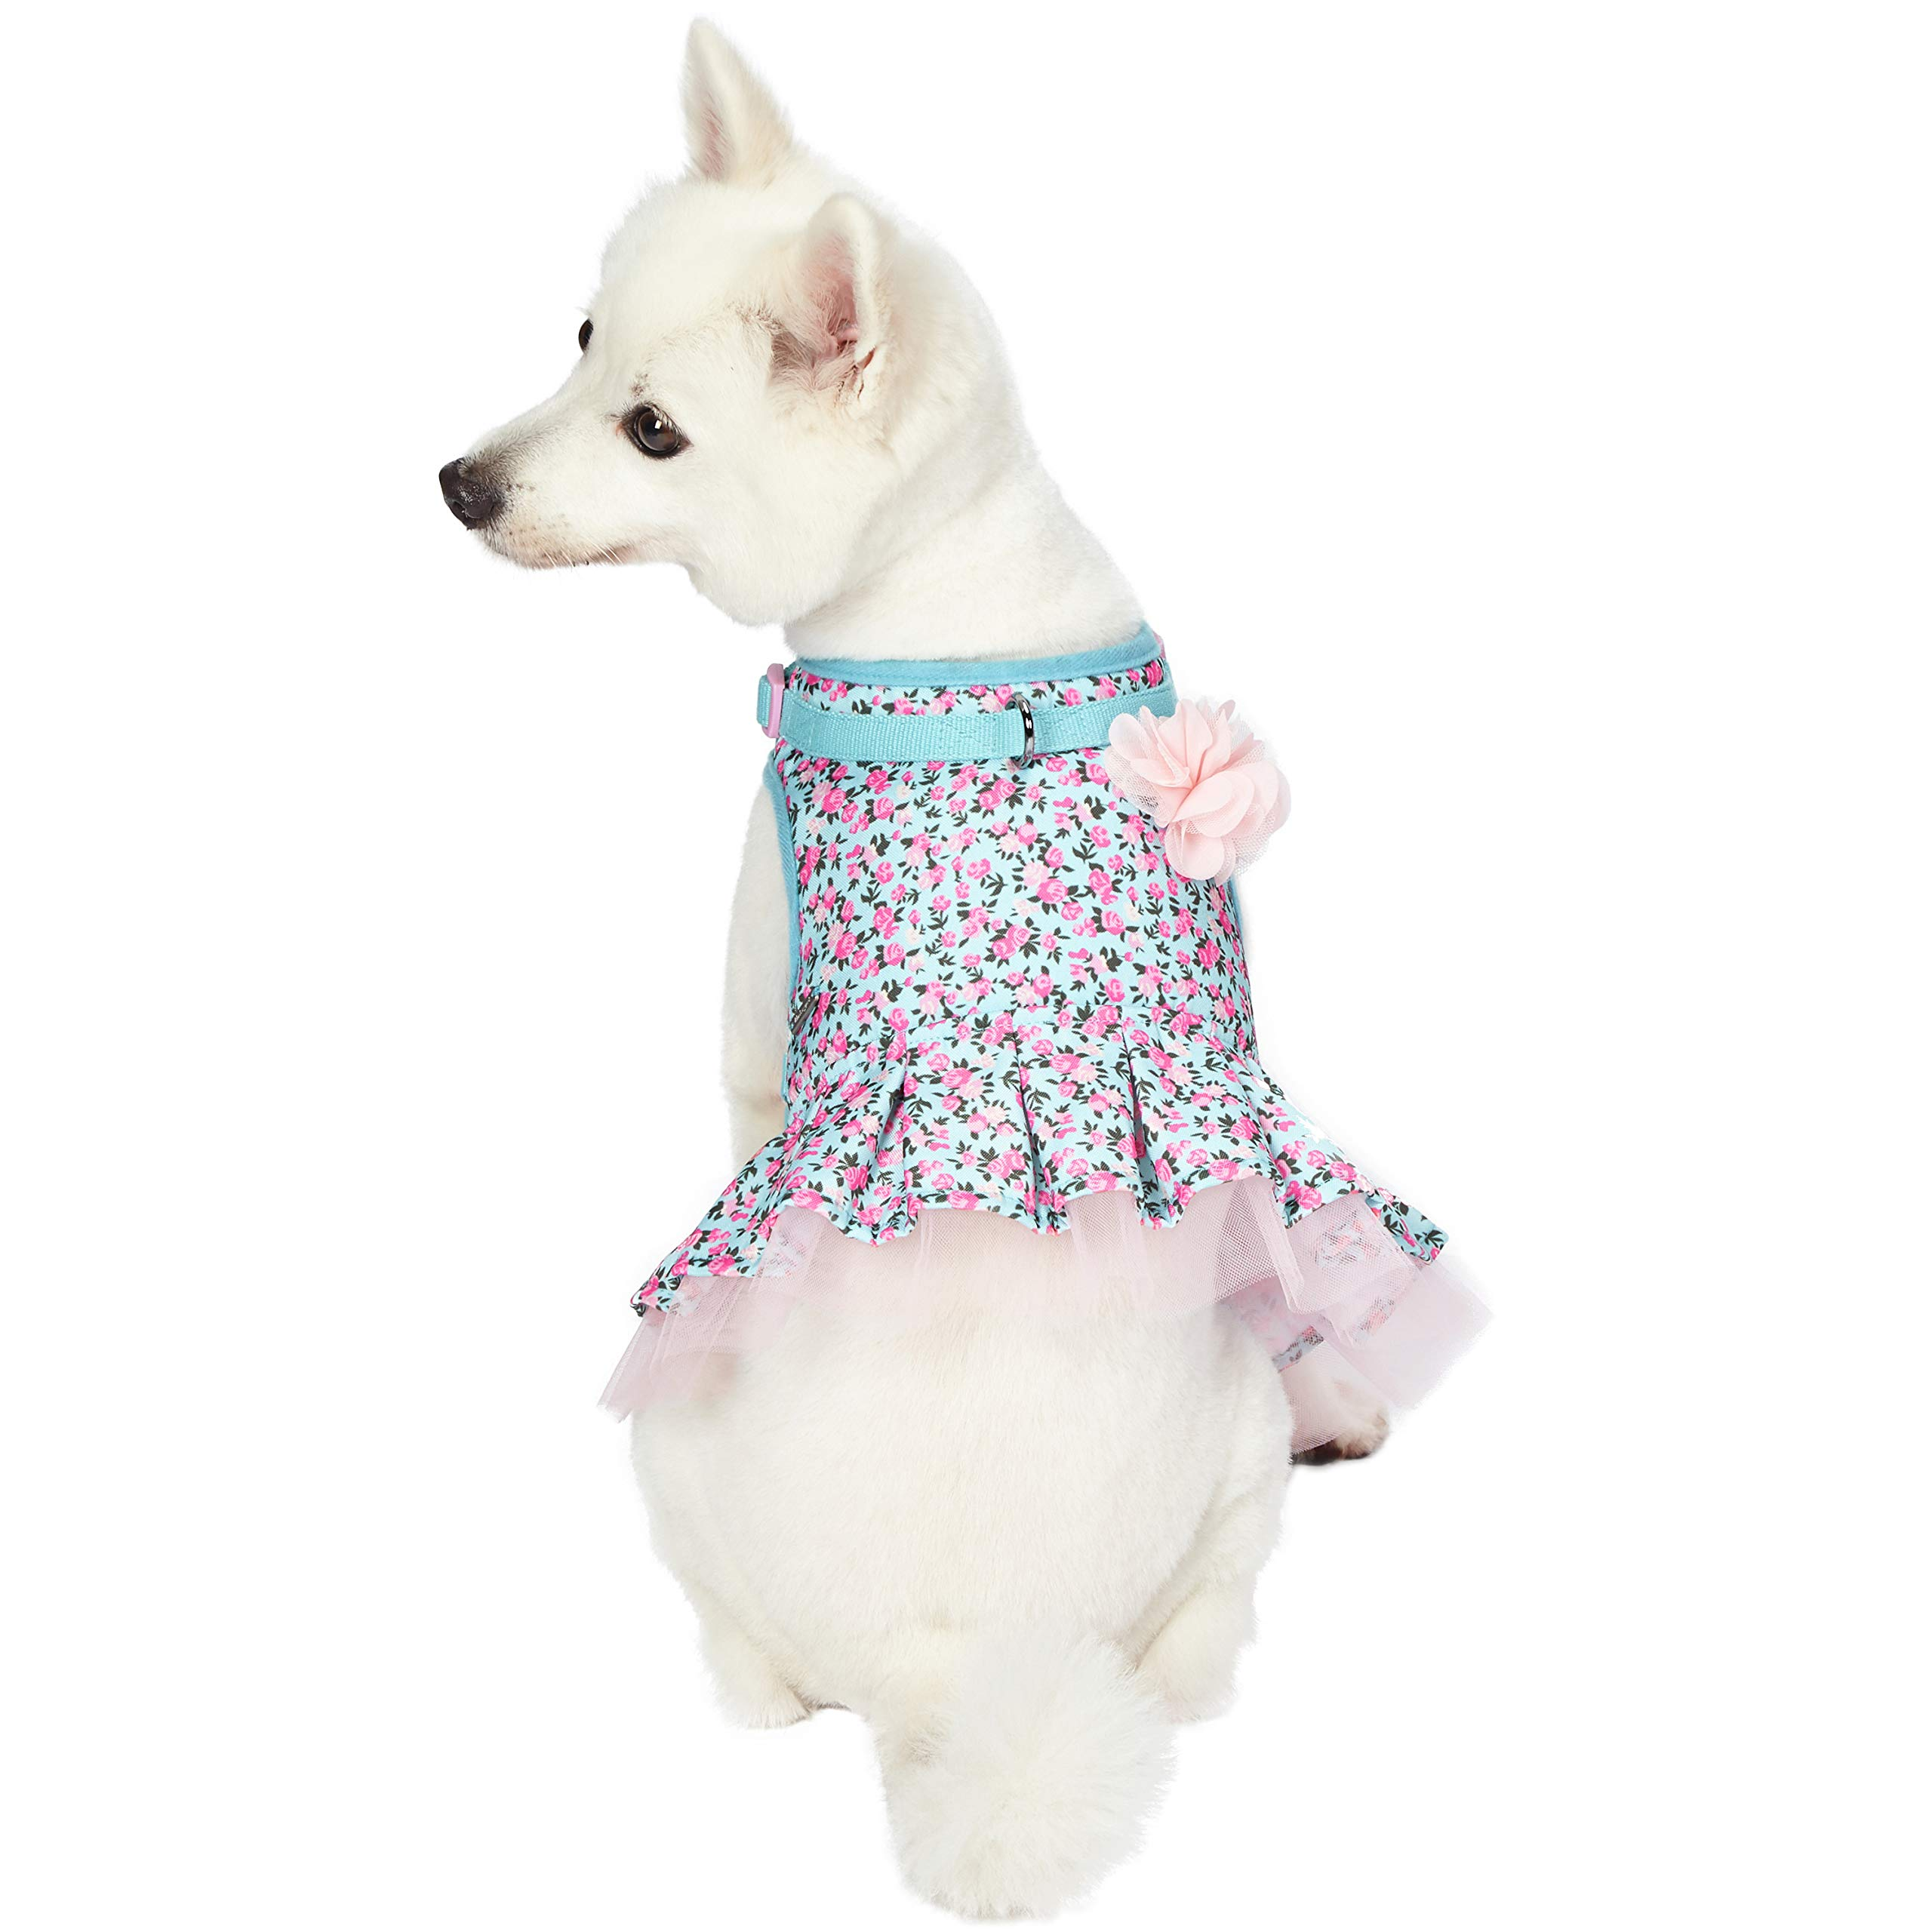 Blueberry Pet 5 Patterns Soft & Comfy Spring Made Well Cute Floral No Pull Mesh Puppy Dog Costume Harness Dress in Light Blue, Chest Girth 14''-16'', X-Small, Adjustable Harnesses for Dogs by Blueberry Pet